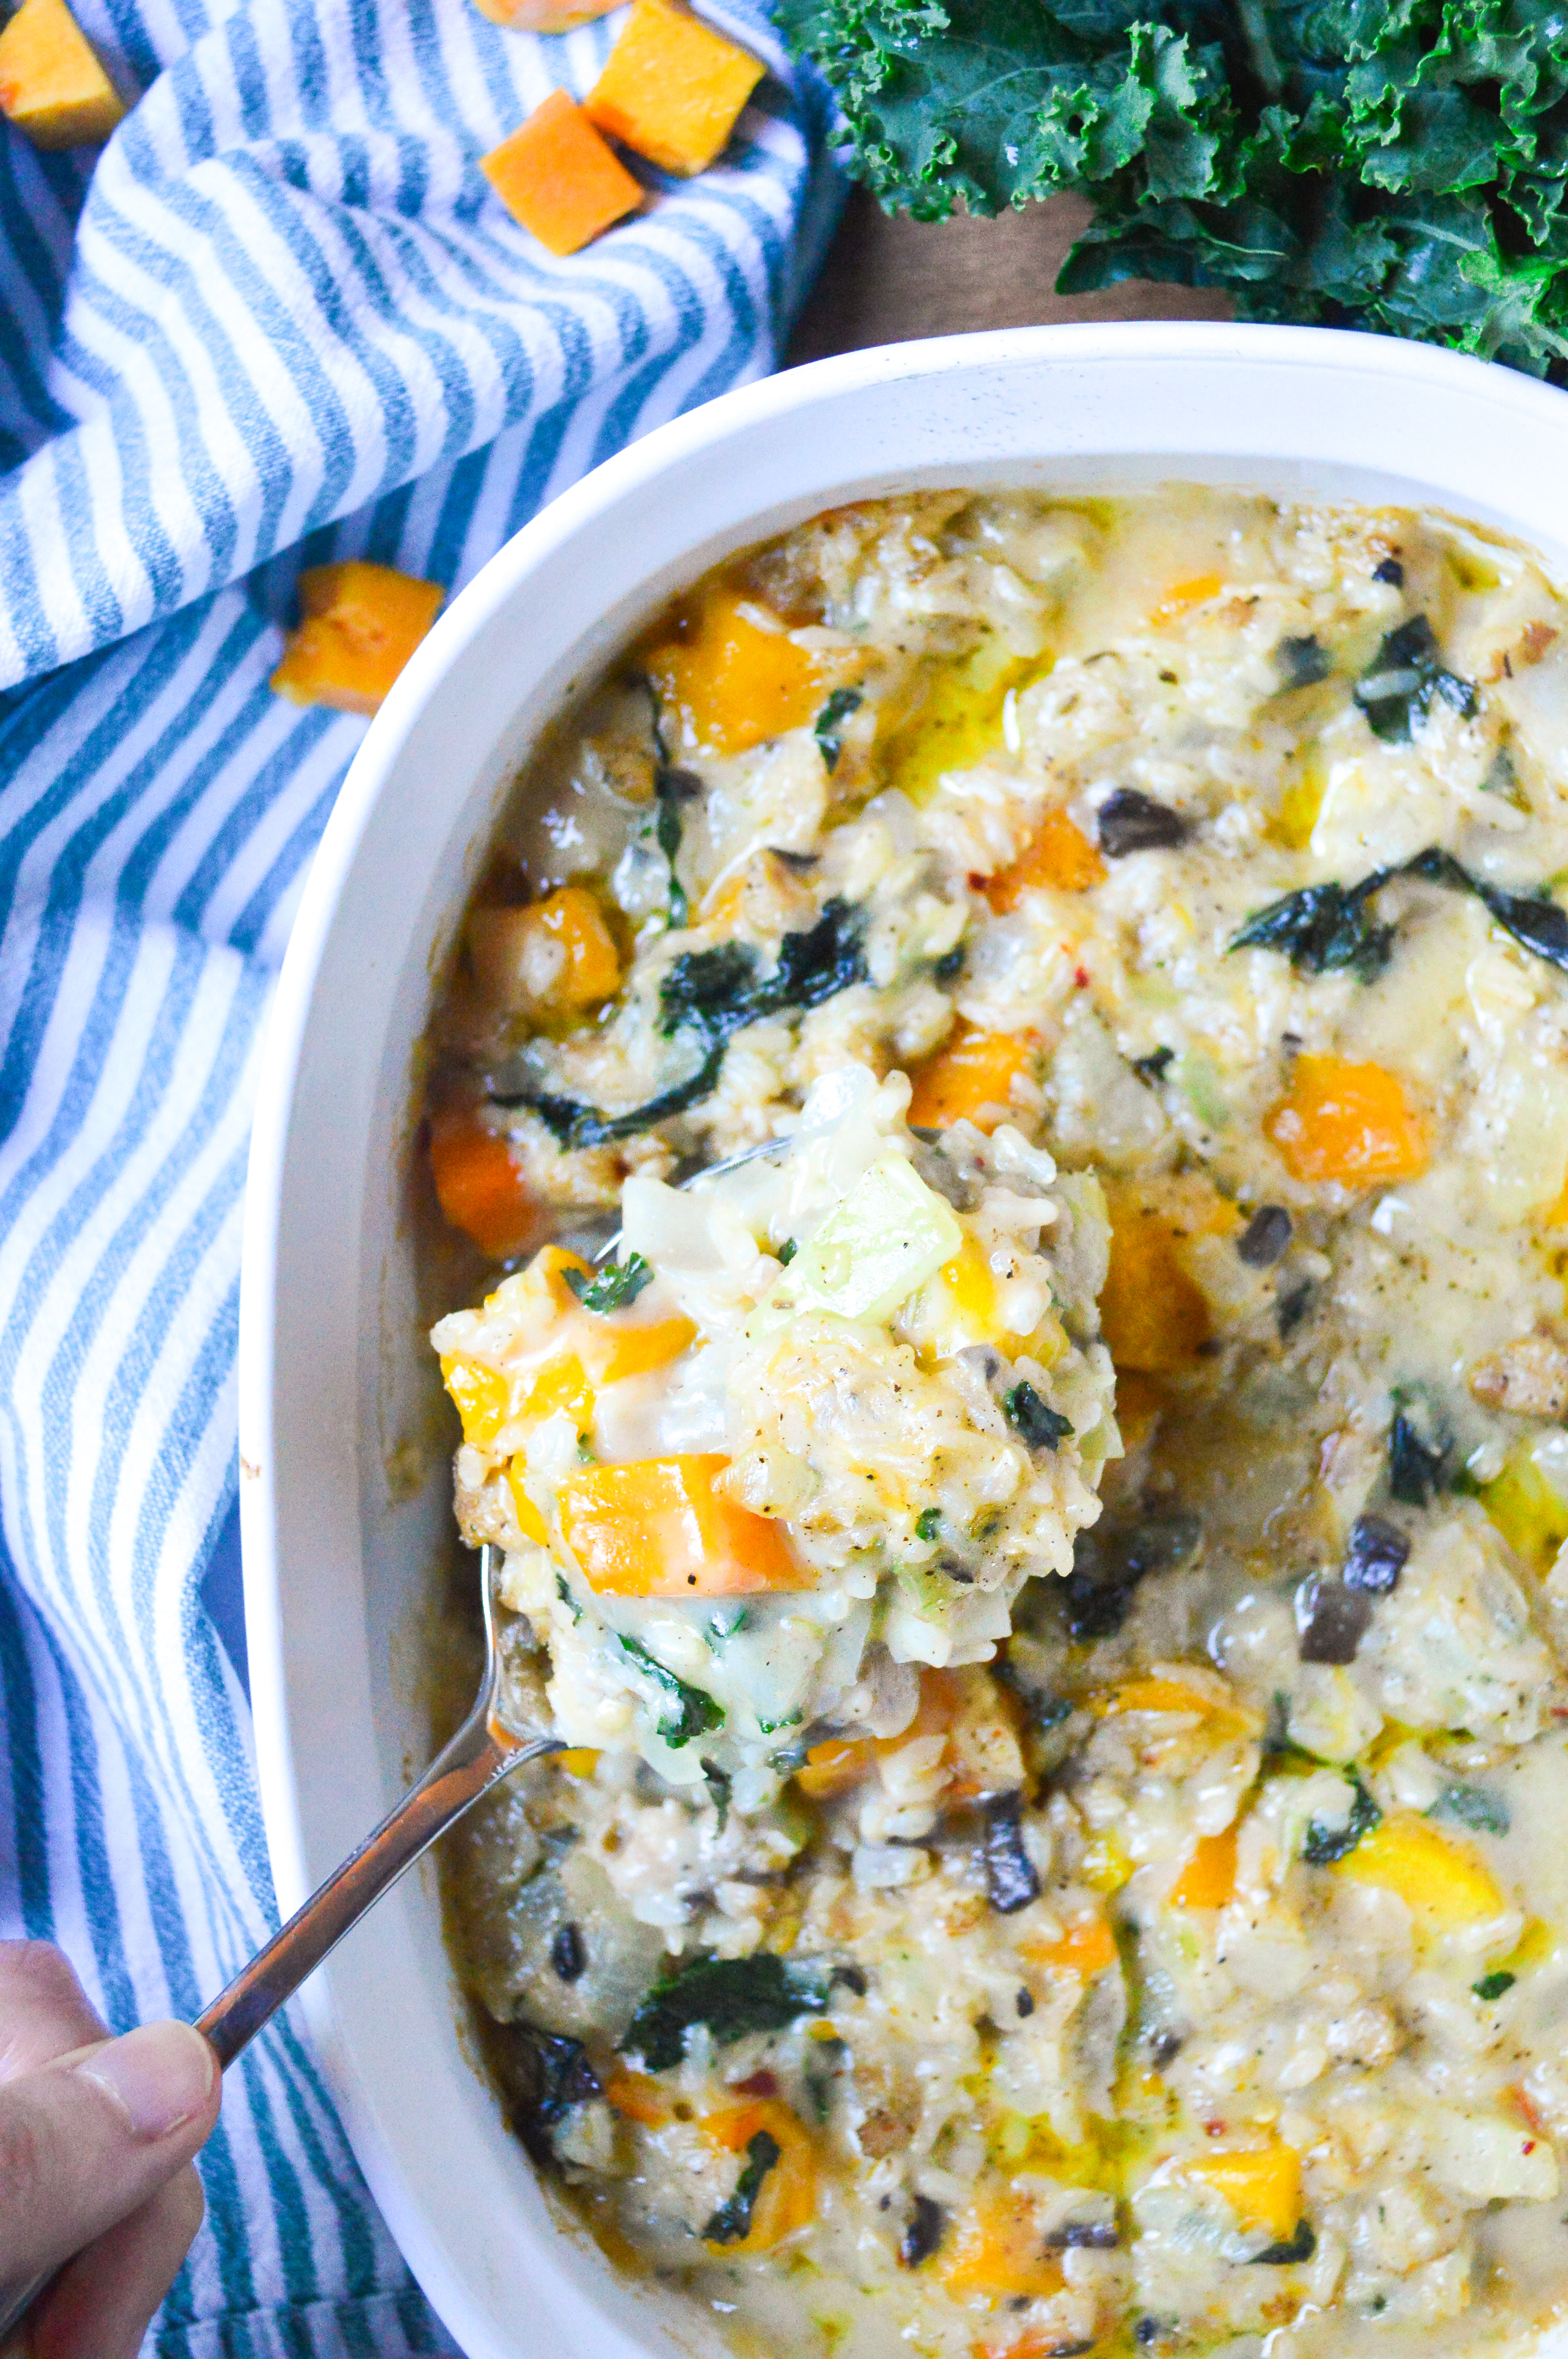 butternut-squash-kale-and-brown-rice-casserole-11